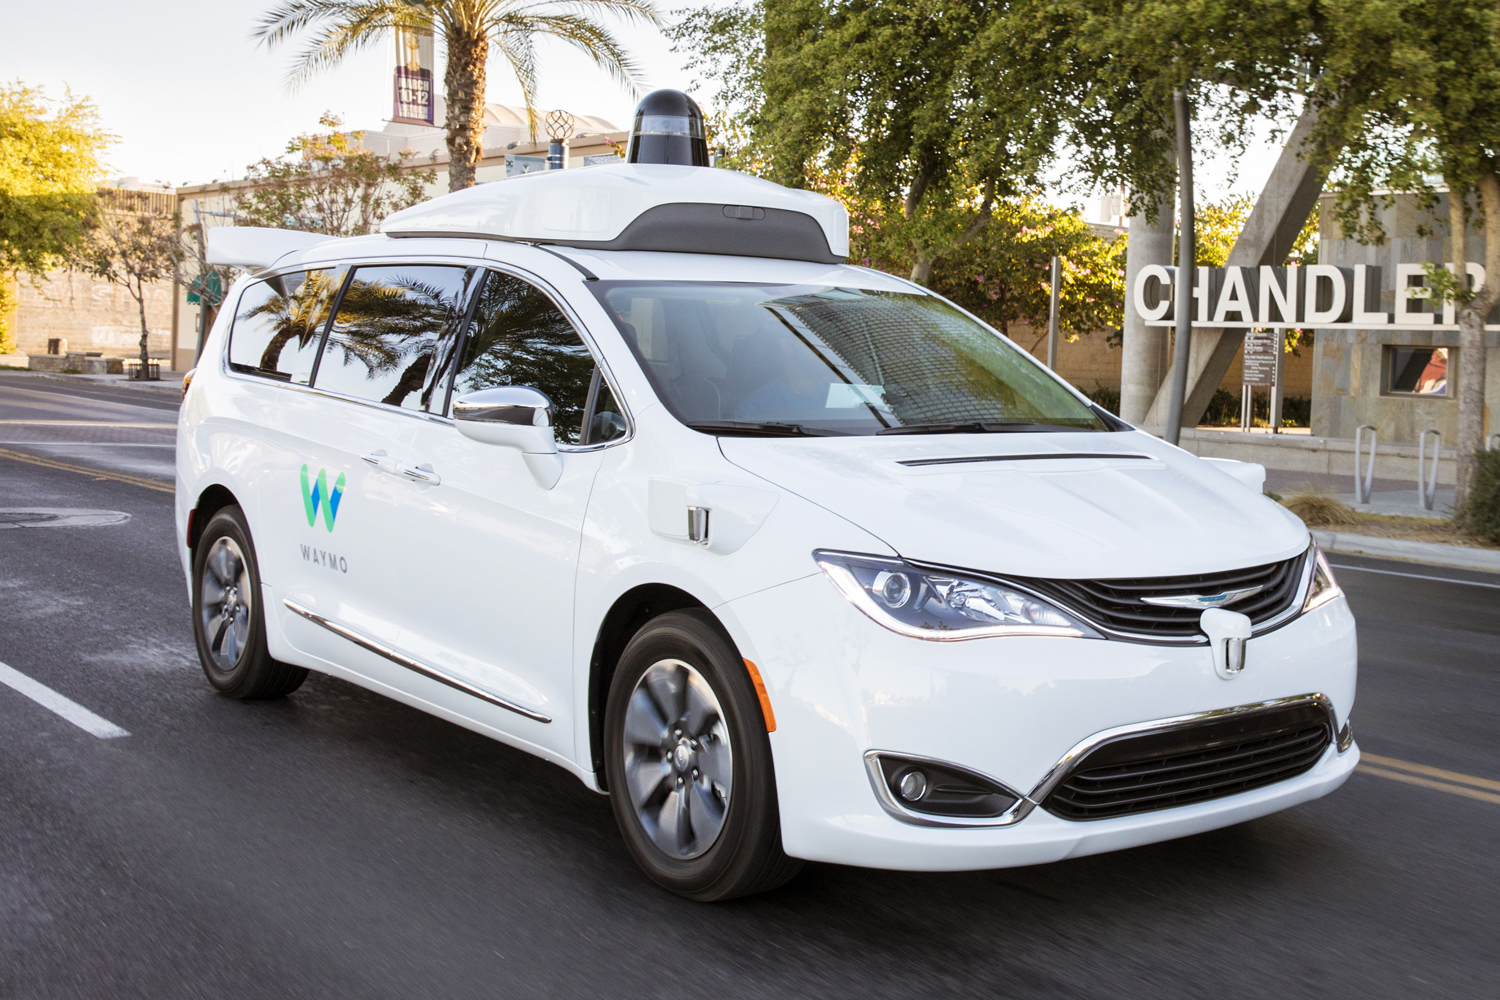 Waymo S Cars Could Soften Prior To Impact To Help Protect